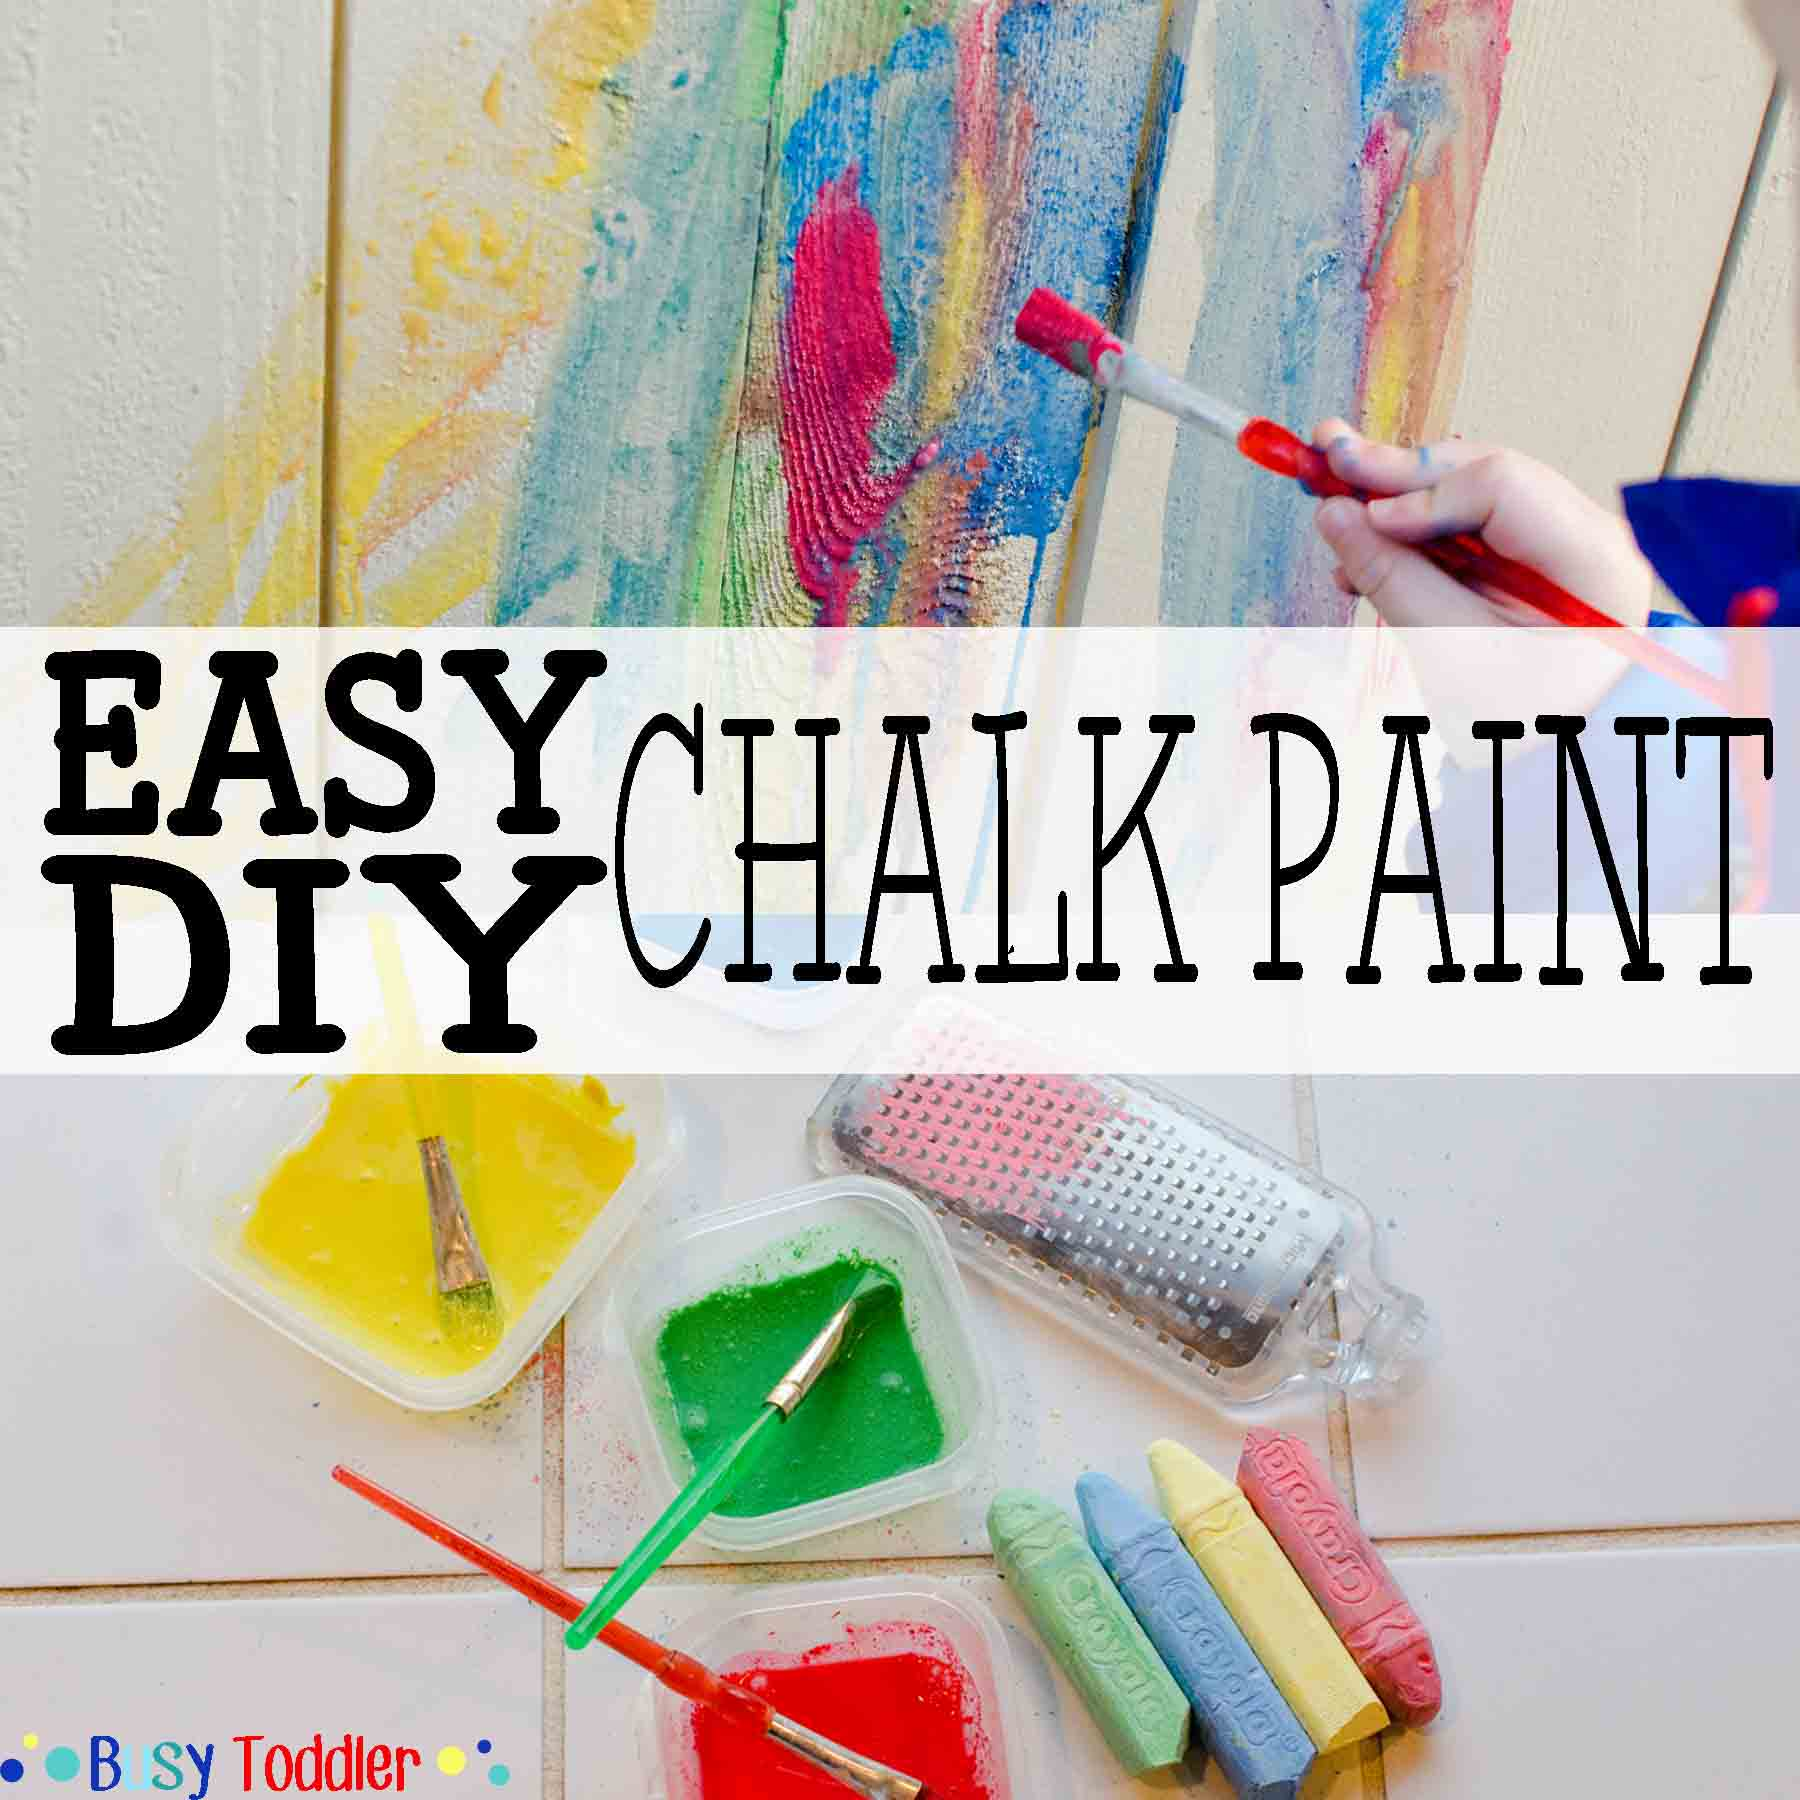 Easy Diy Chalk Paint Busy Toddler